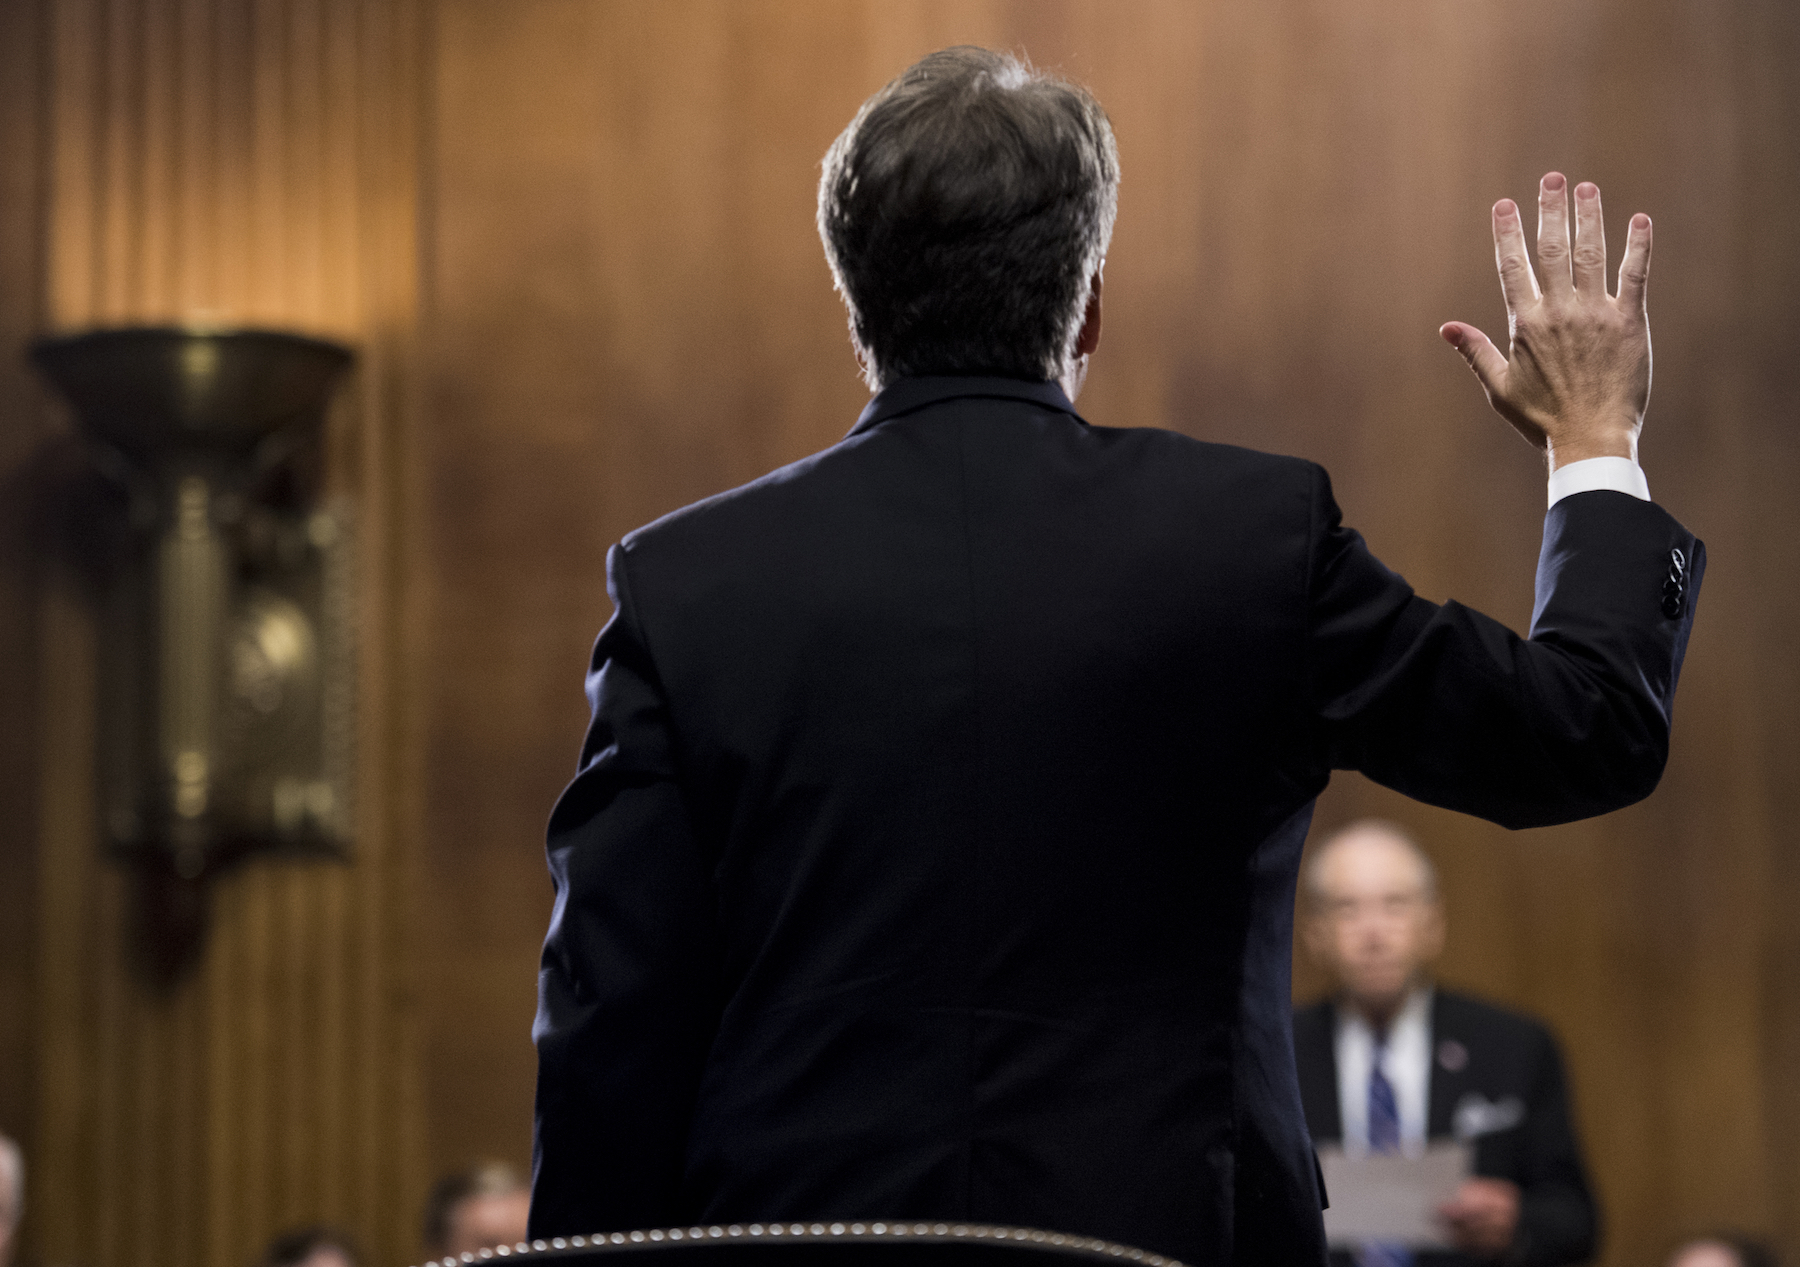 "<div class=""meta image-caption""><div class=""origin-logo origin-image ap""><span>AP</span></div><span class=""caption-text"">Brett Kavanaugh is sworn in before testifying during the Senate Judiciary Committee hearing on his nomination be an associate justice of the Supreme Court of the United States. (Tom Williams/CQ Roll Call/Pool)</span></div>"